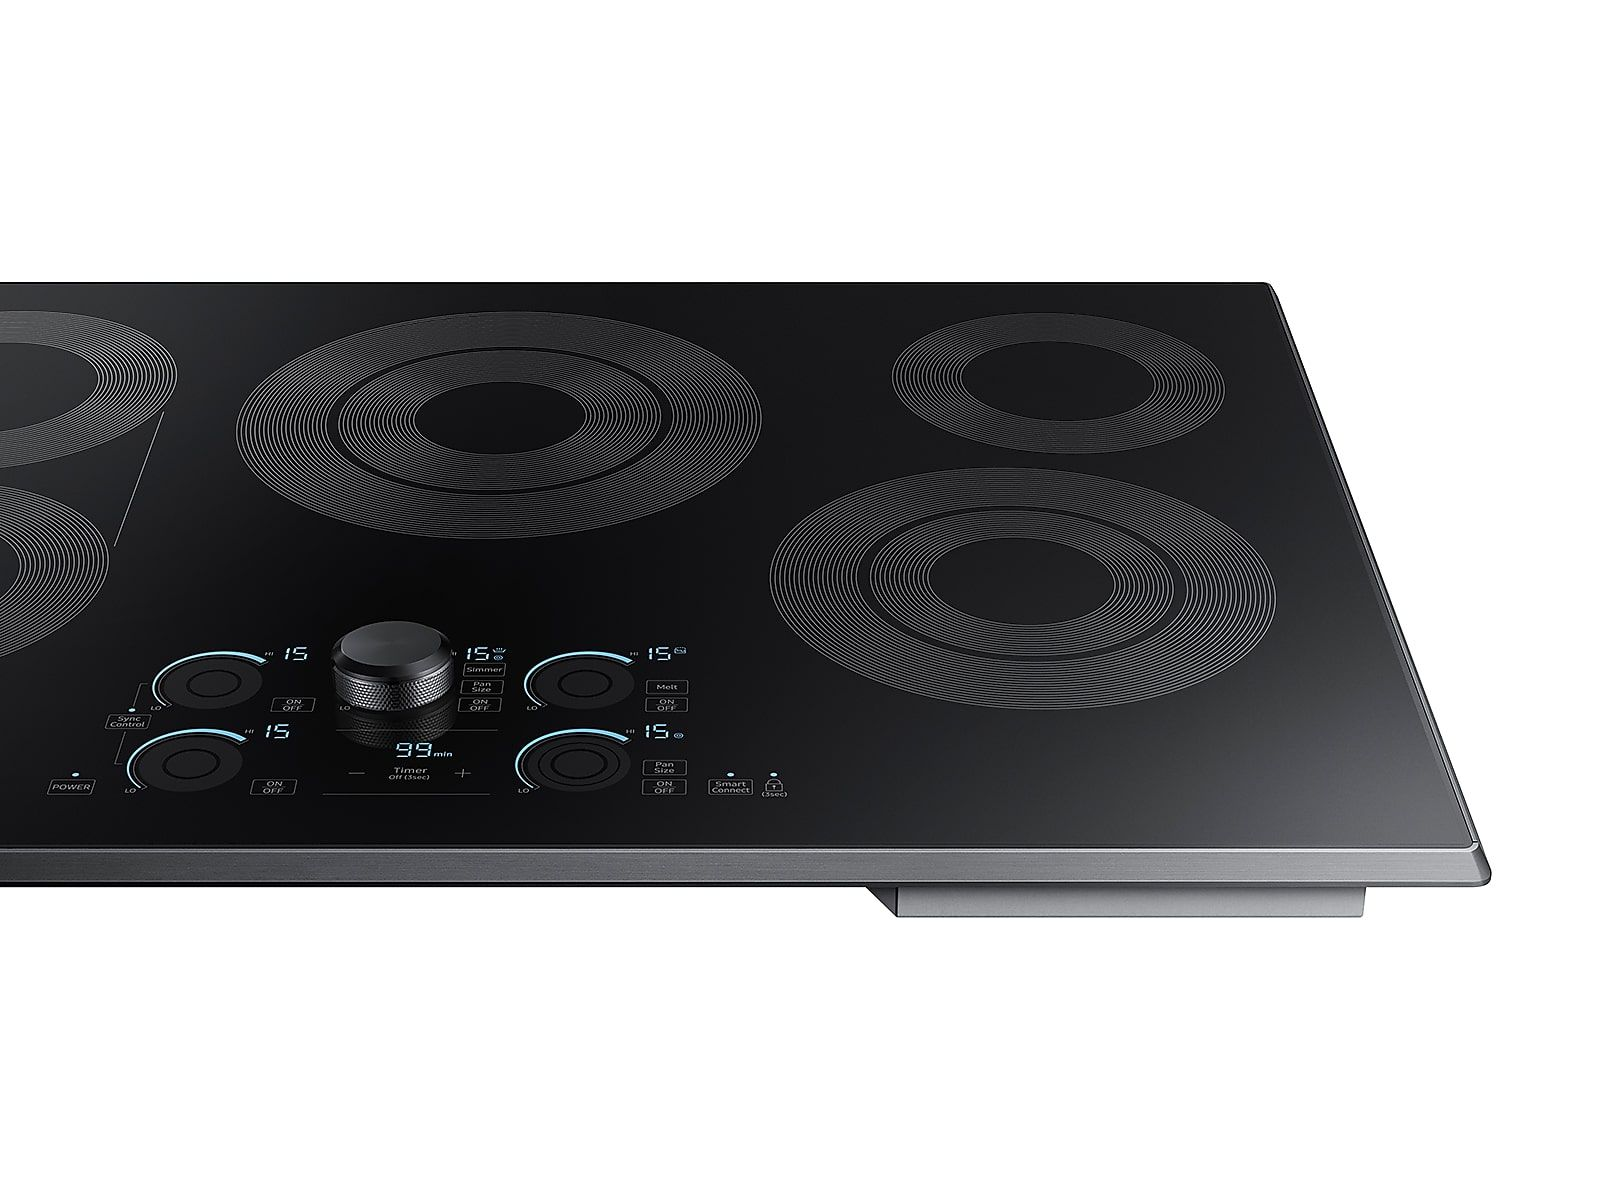 30 Inch Electric Cooktop With Sync Elements In Black Stainless Steel Cooktop Nz30k7570rg Aa Samsung Us In 2020 Electric Cooktop Samsung Stoves Stainless Steel Cooktop